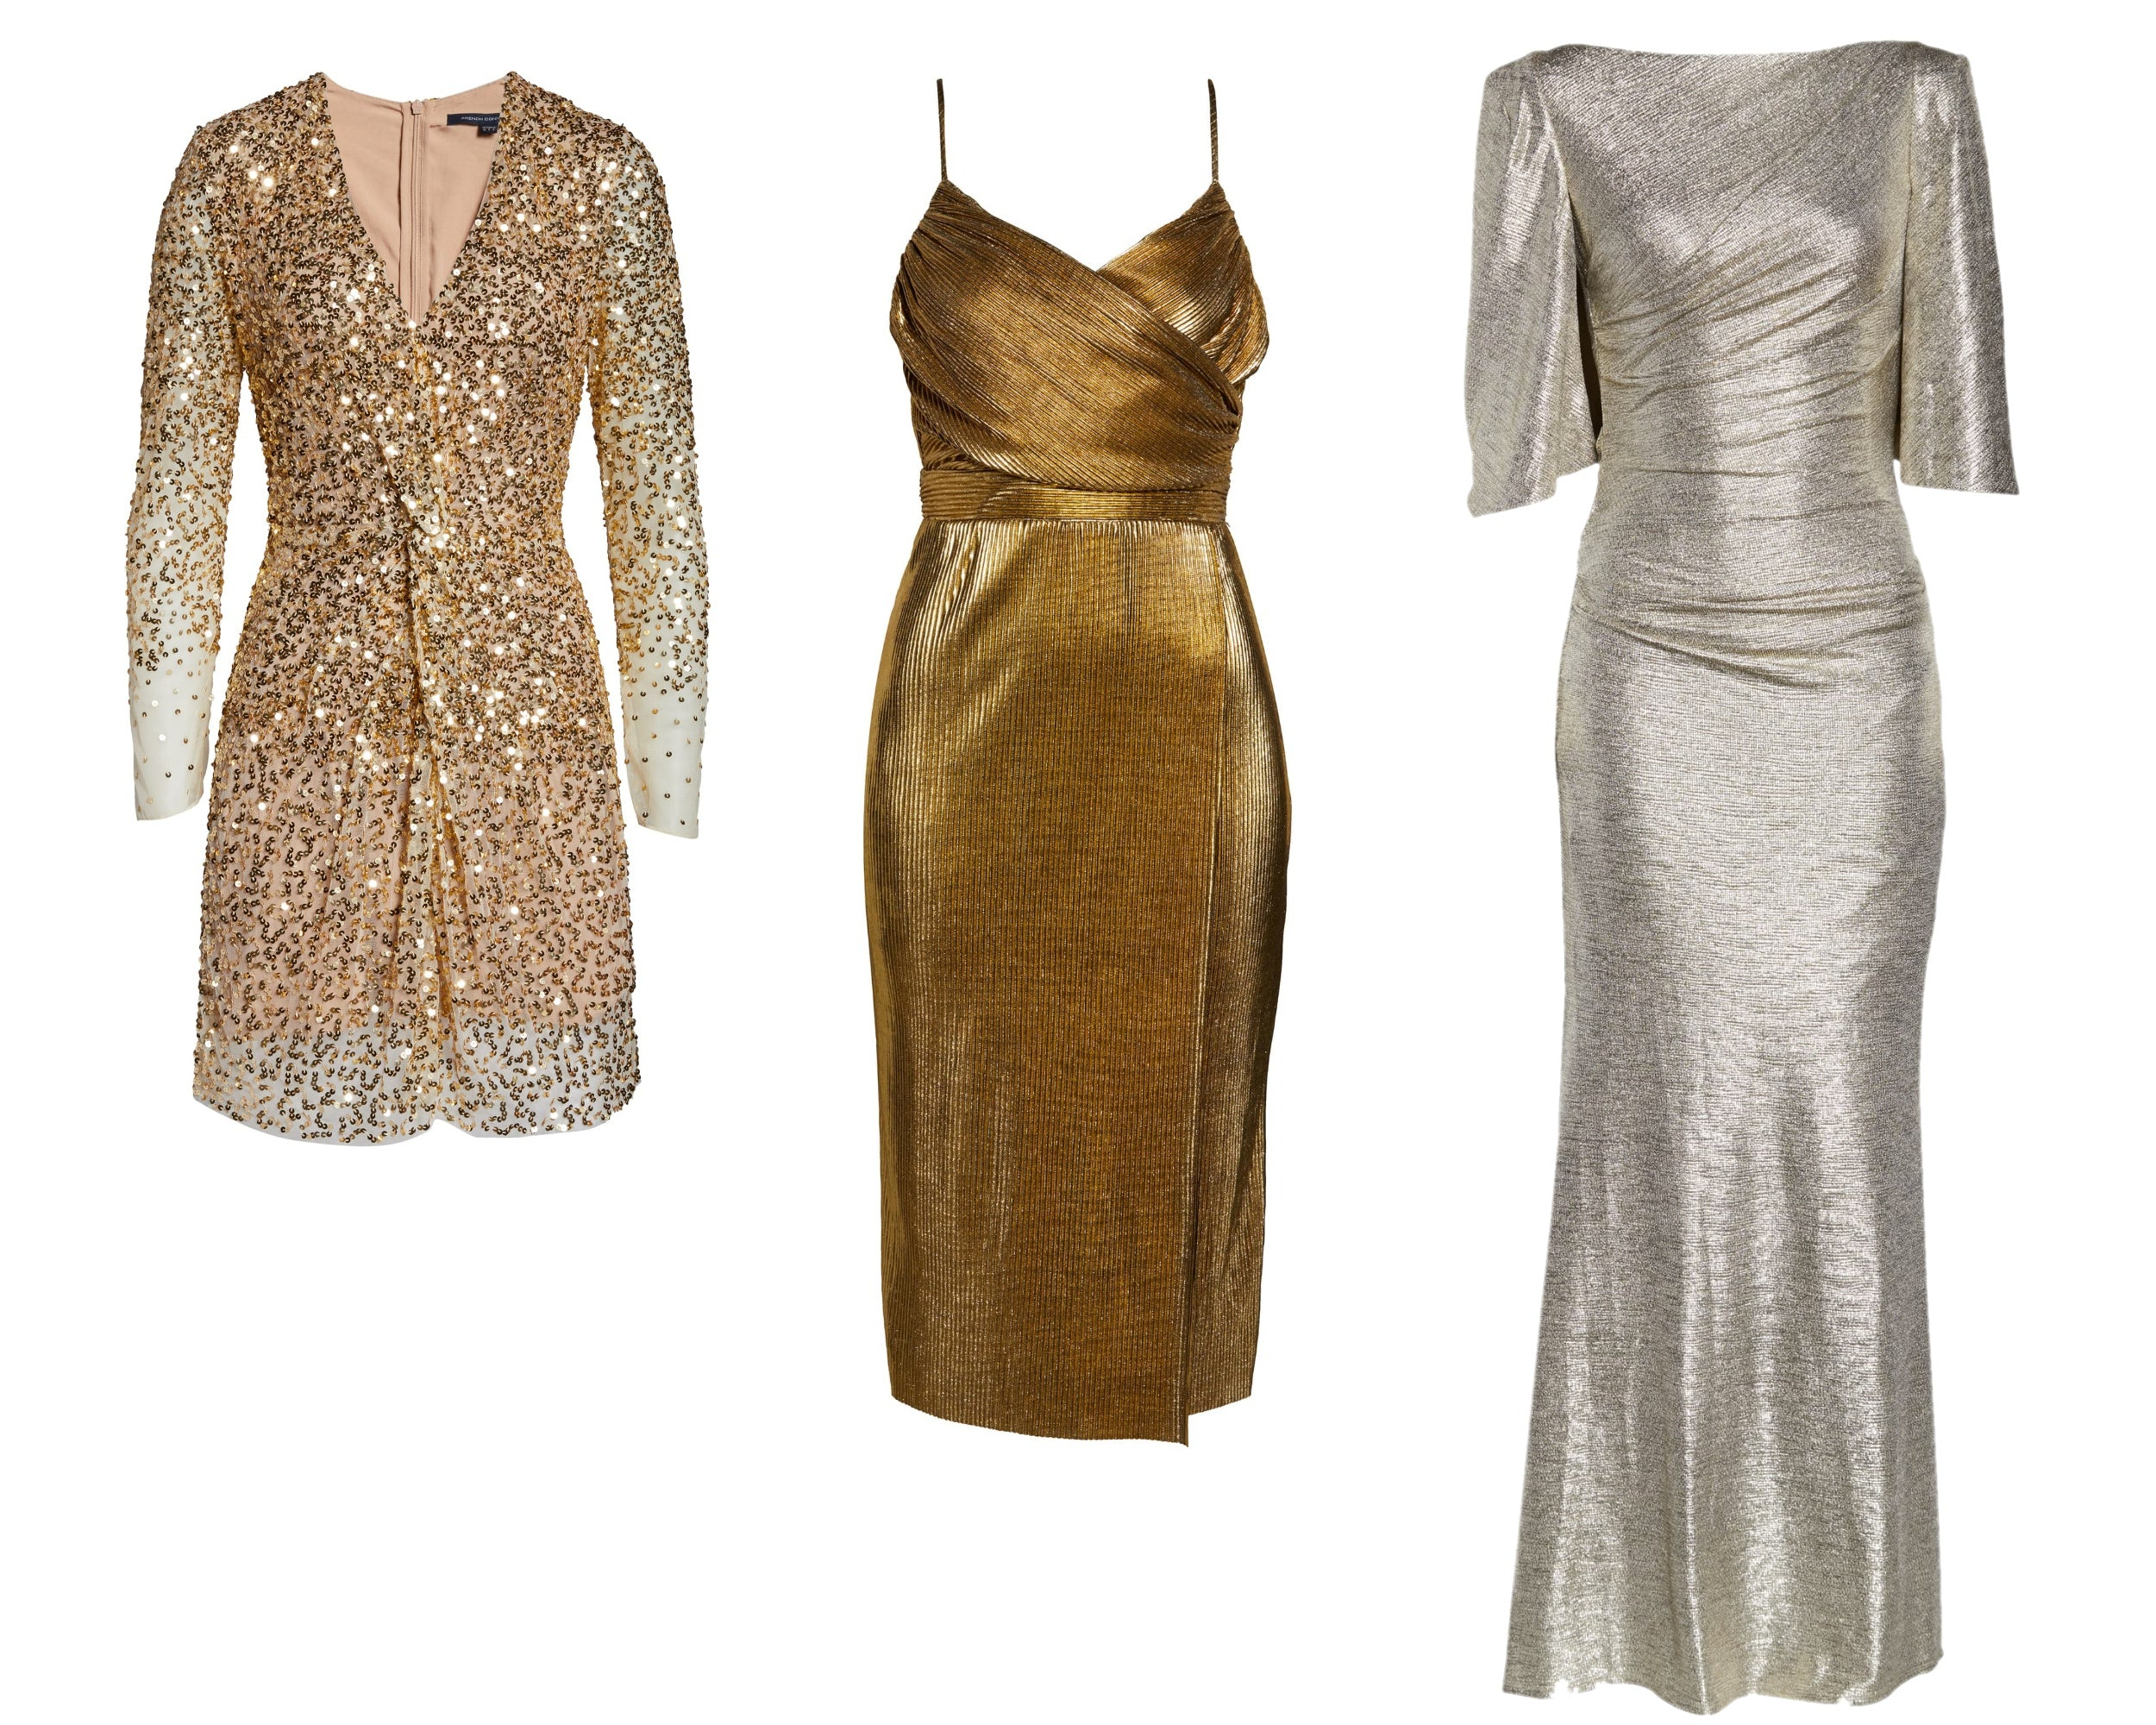 Metallic Gold Dresses from Nordstrom